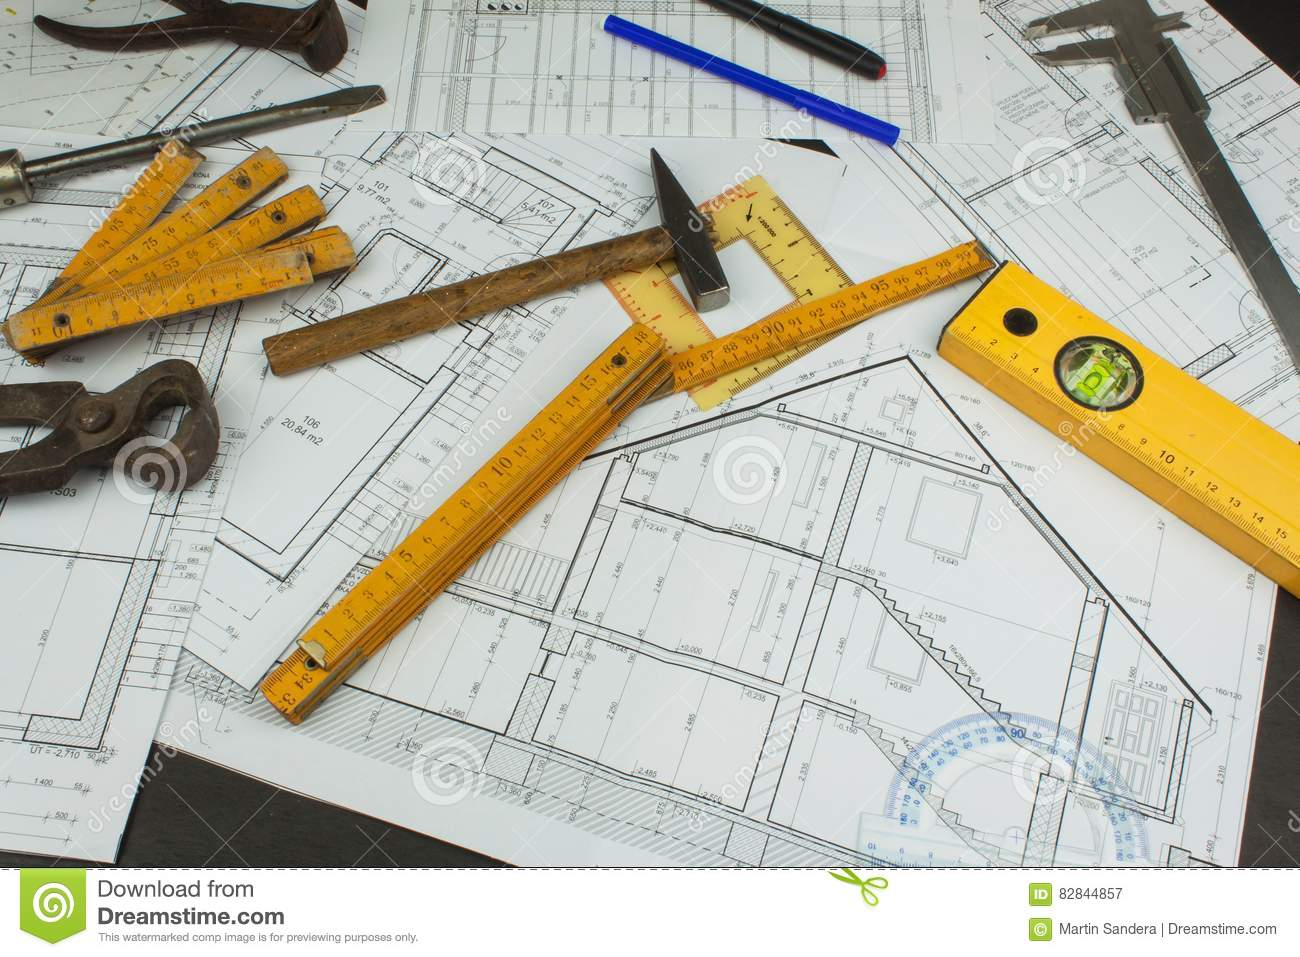 Desk Project Supervisor Plans Of Building Architectural Schematic Floor Plan Designed On The Drawing